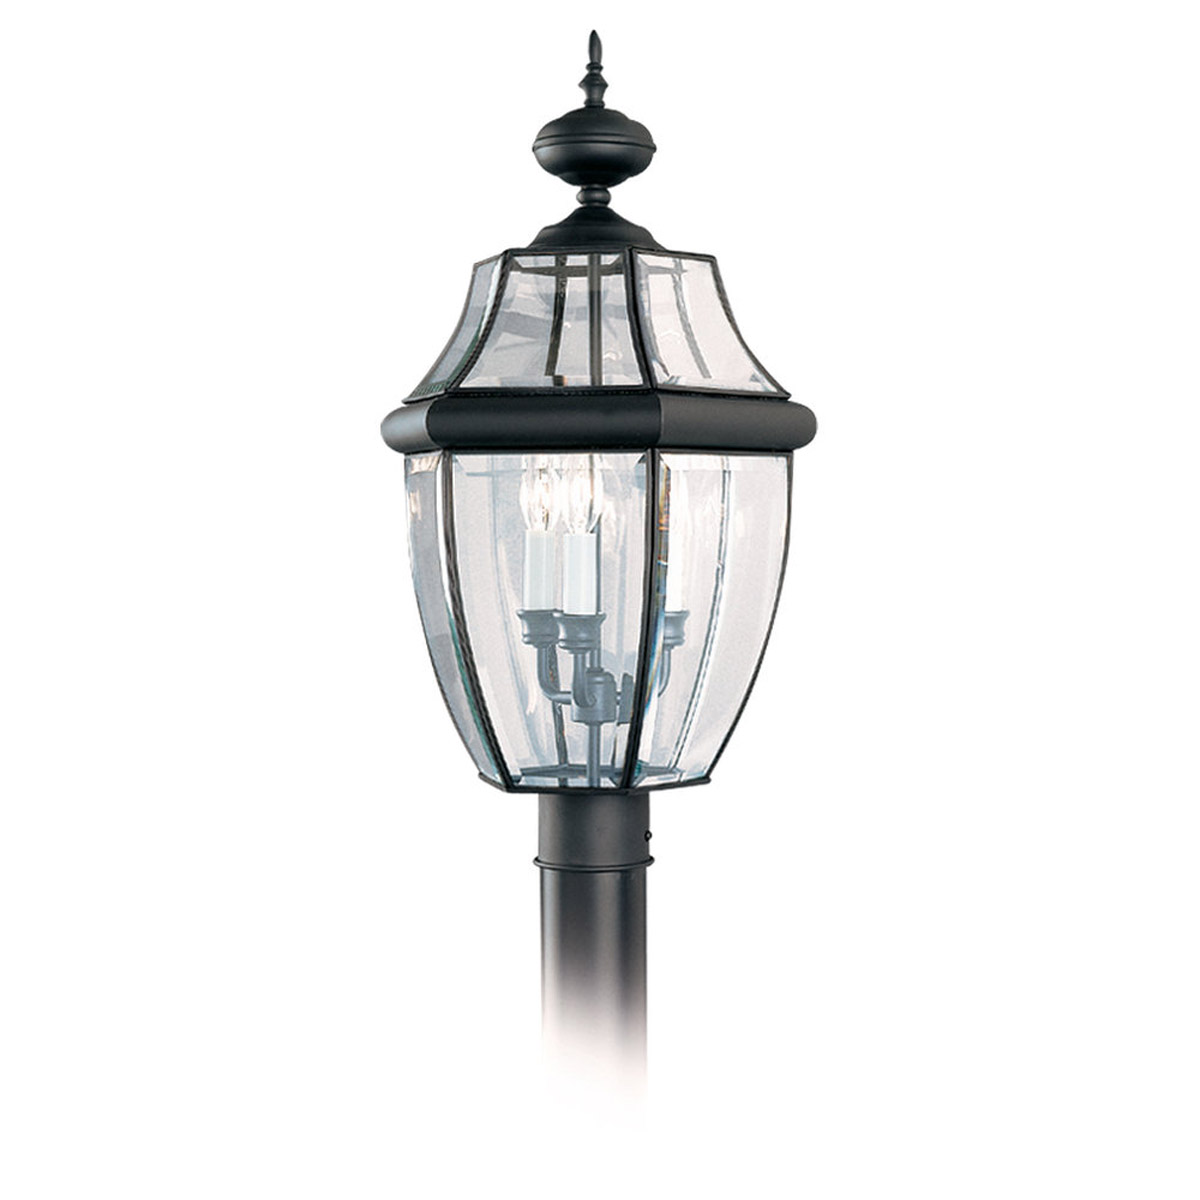 Sea Gull Lighting Lancaster 3 Light Outdoor Post Lantern in Black 8239-12